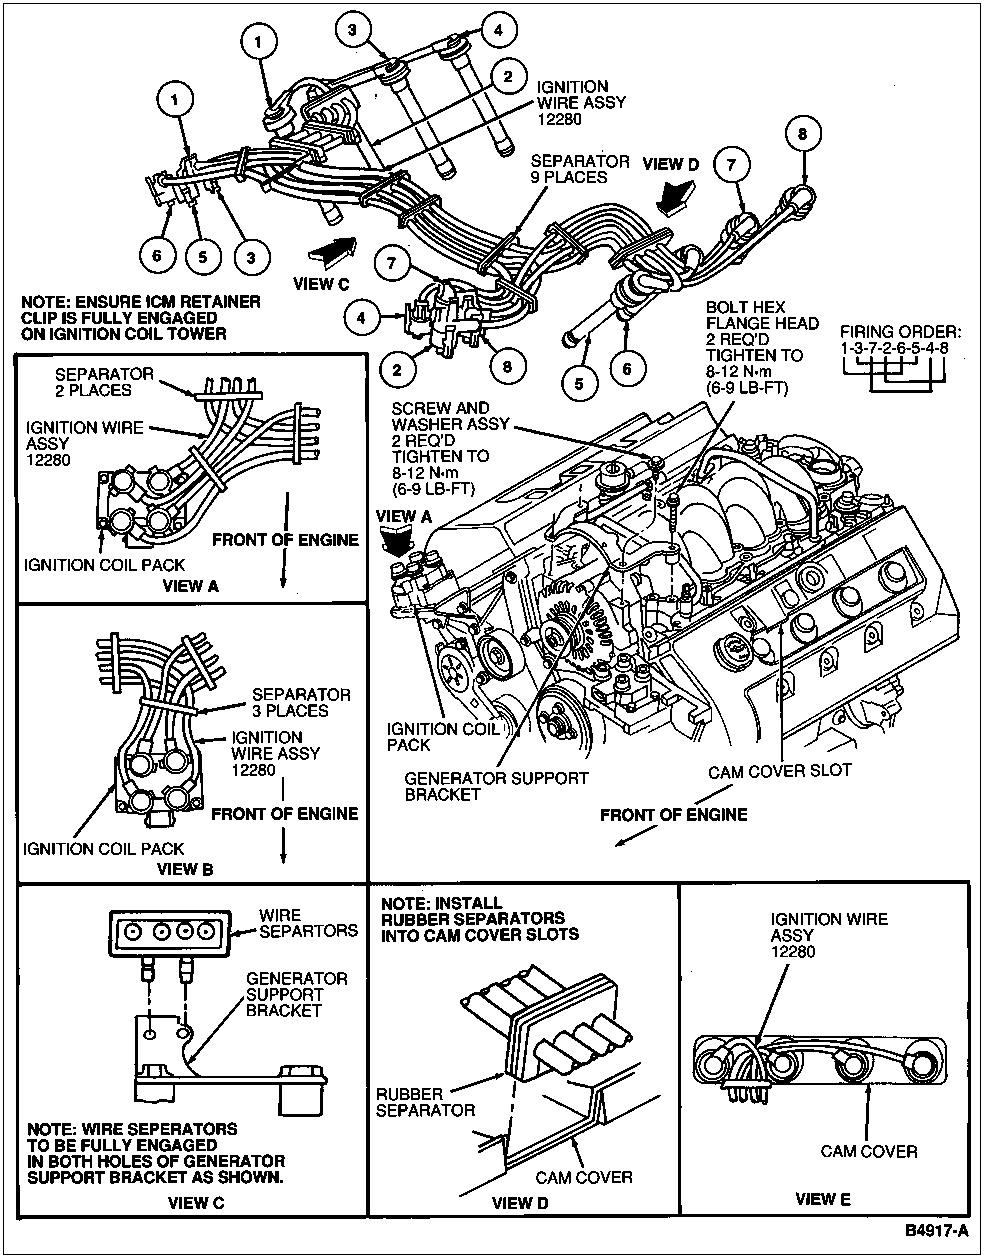 [SCHEMATICS_48ZD]  936C47F 1998 Lincoln Continental Wiring Diagram | Wiring Library | 94 Lincoln Continental 3 8l Wiring Diagram |  | Wiring Library